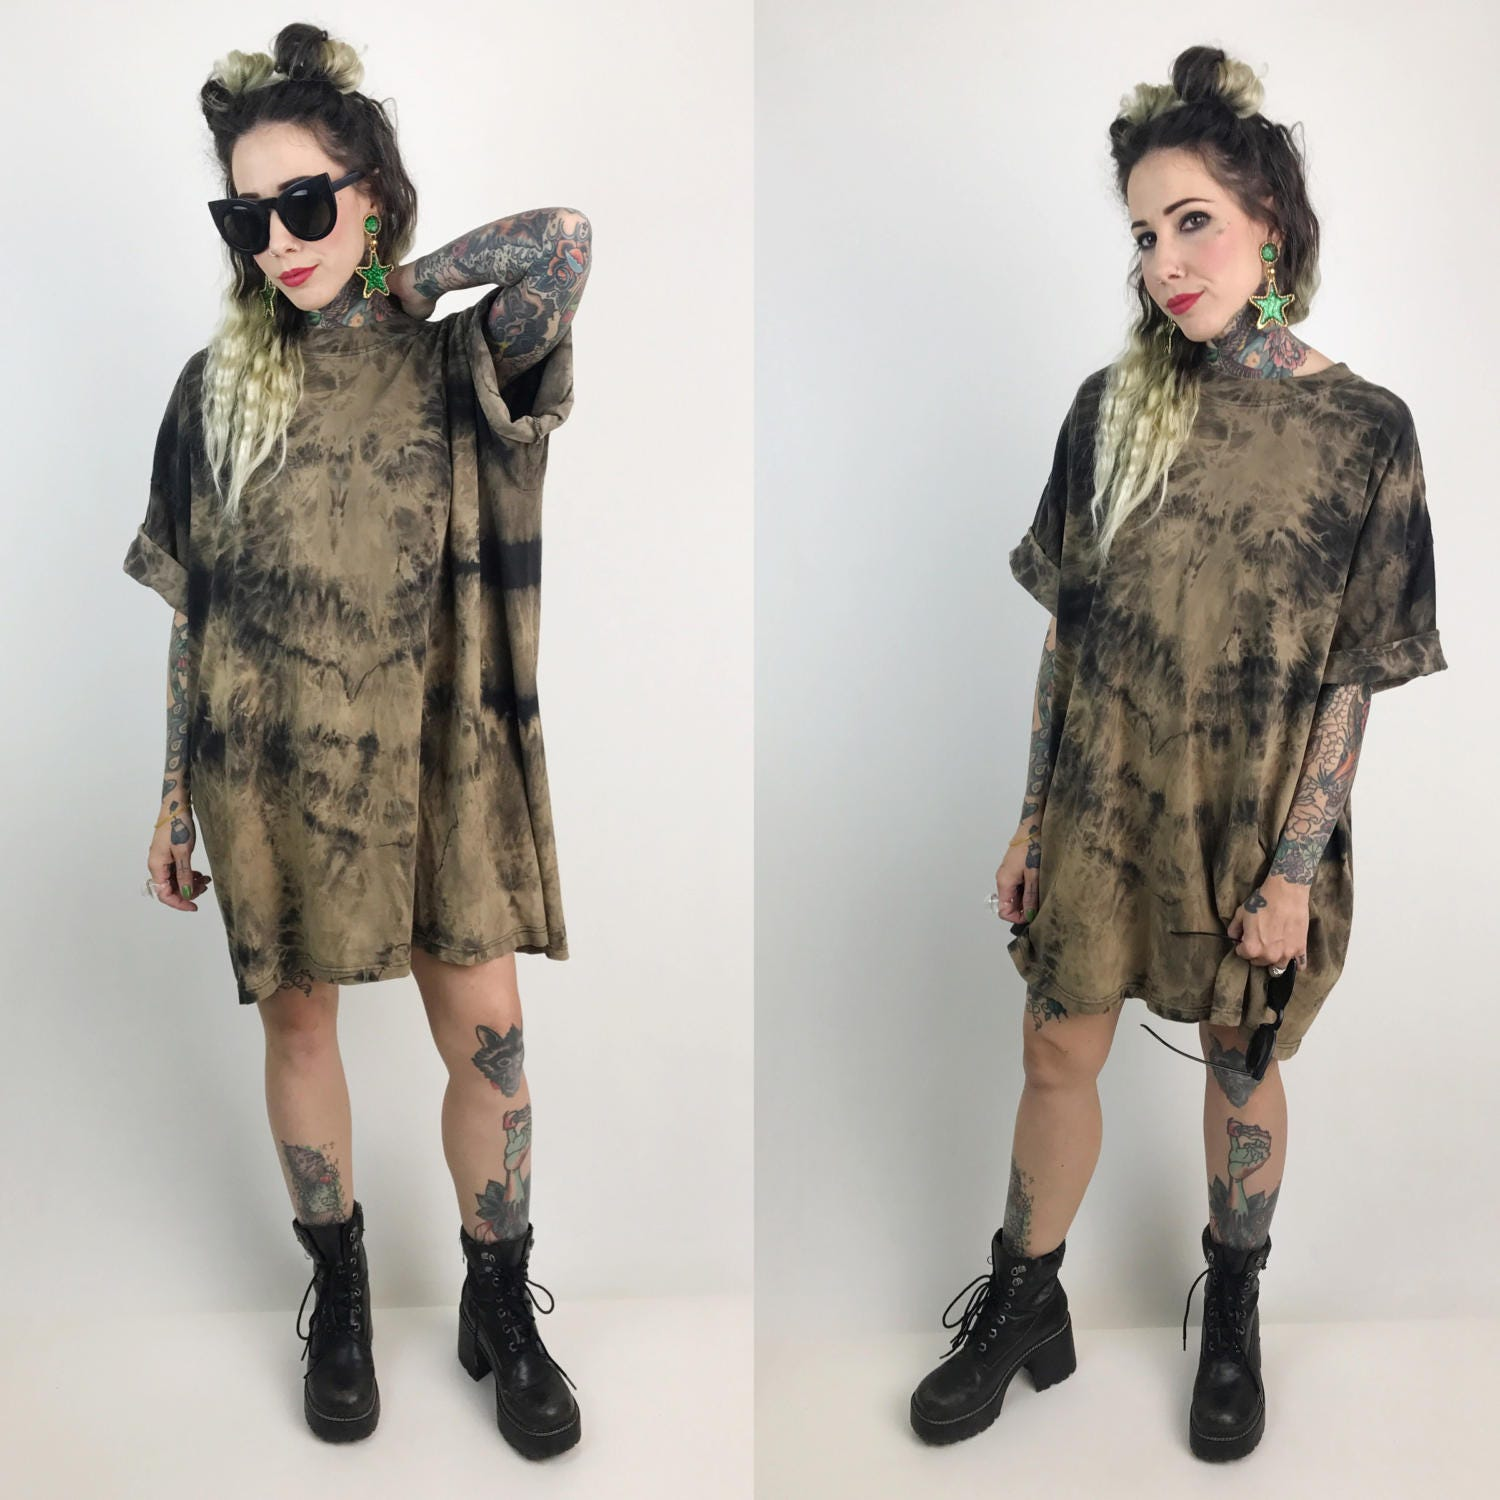 6691e3967c1 ... Plus Size UNISEX Street Style - Baggy Bleach Tie Dye Shirt Dress.  gallery photo gallery photo gallery photo gallery photo. Shipping to   Free